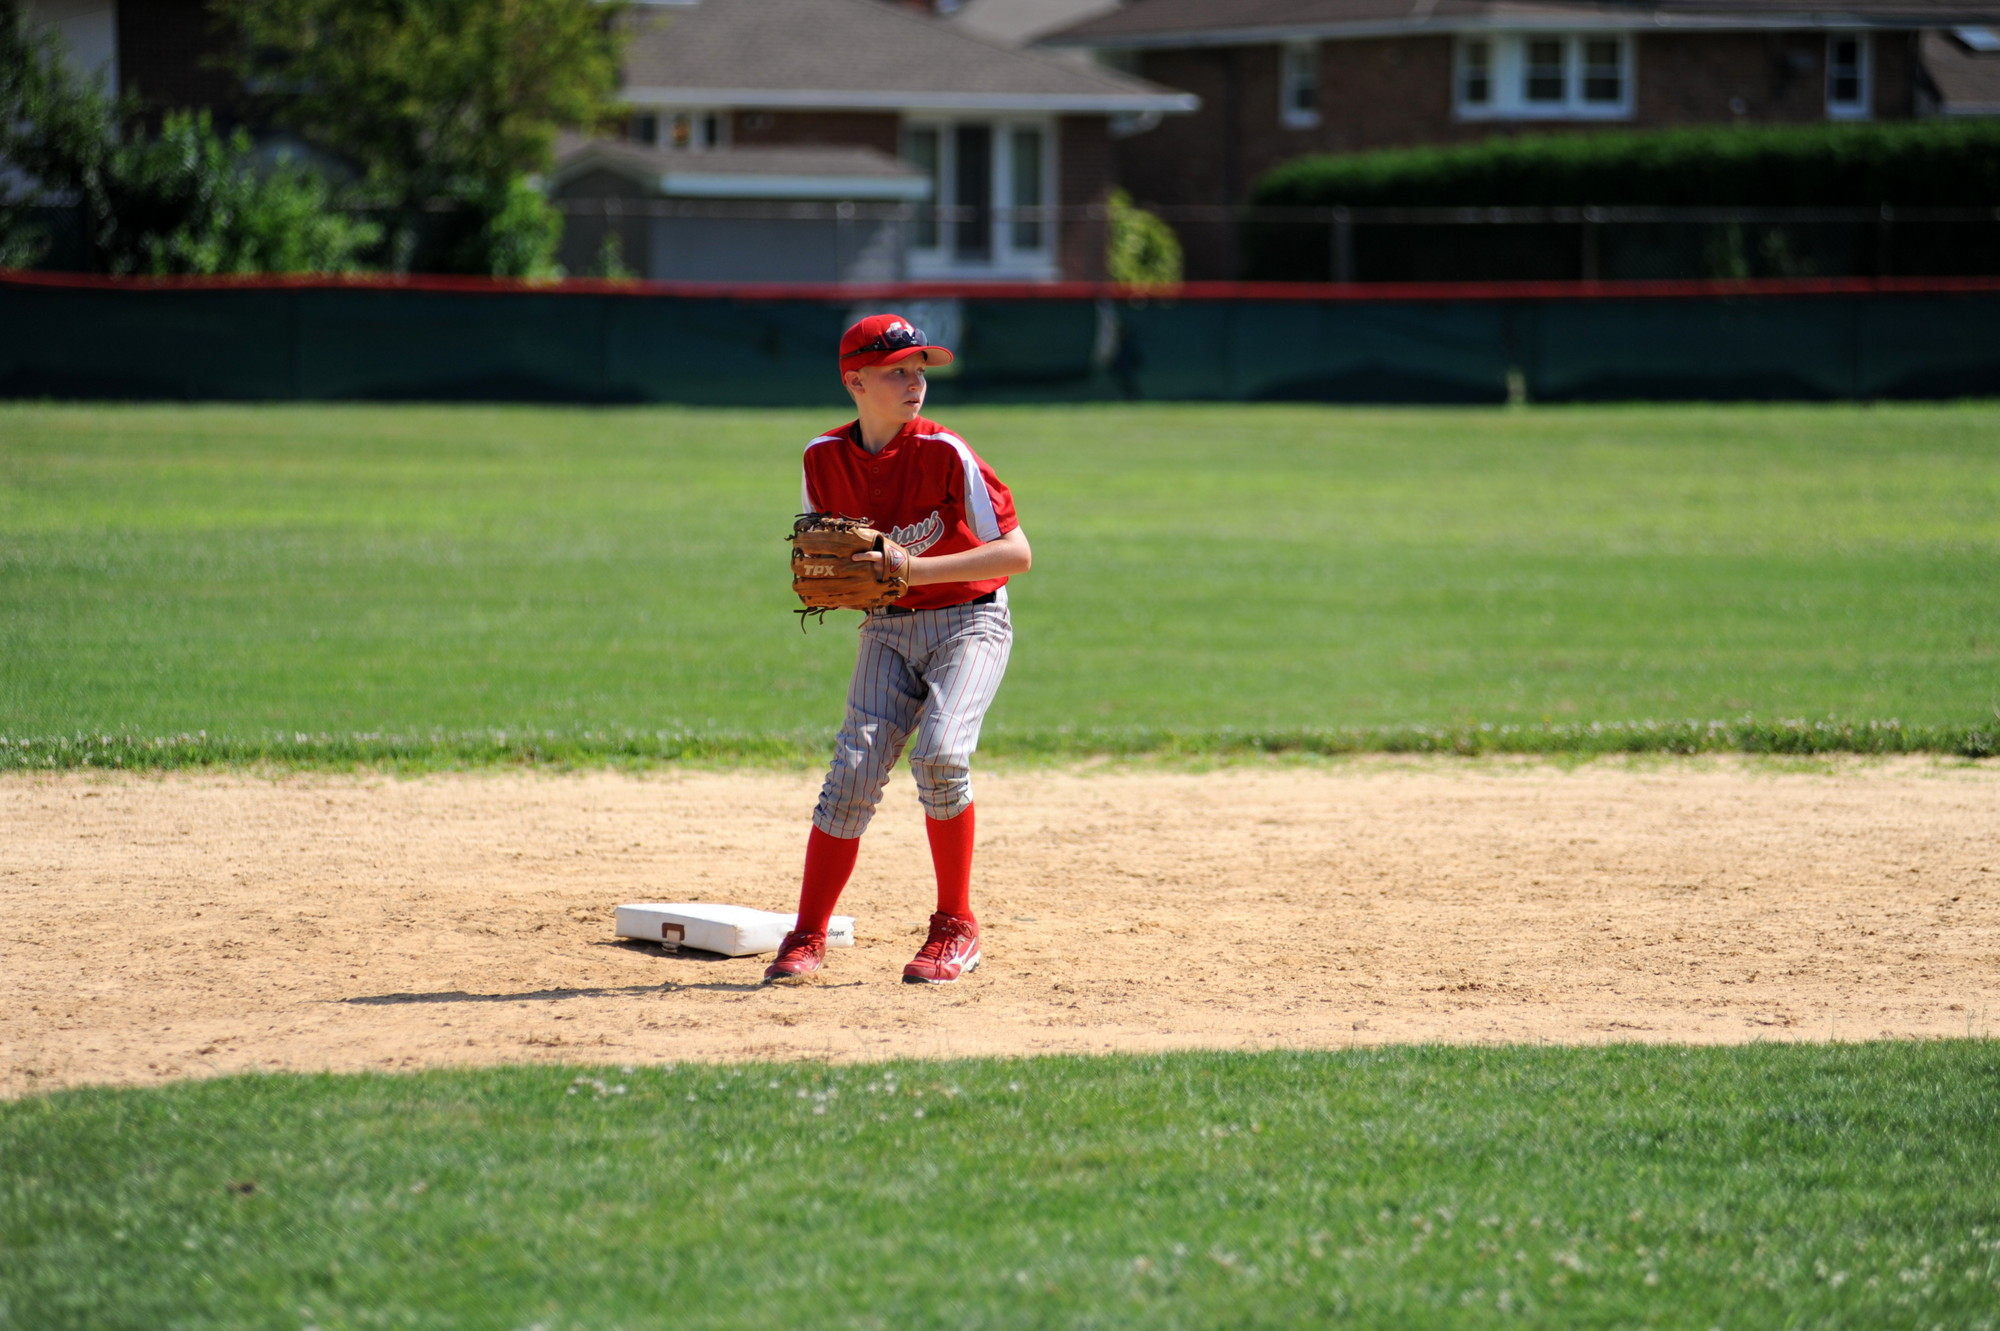 Brendan Turton fired a ball from shortstop during the baseball camp.